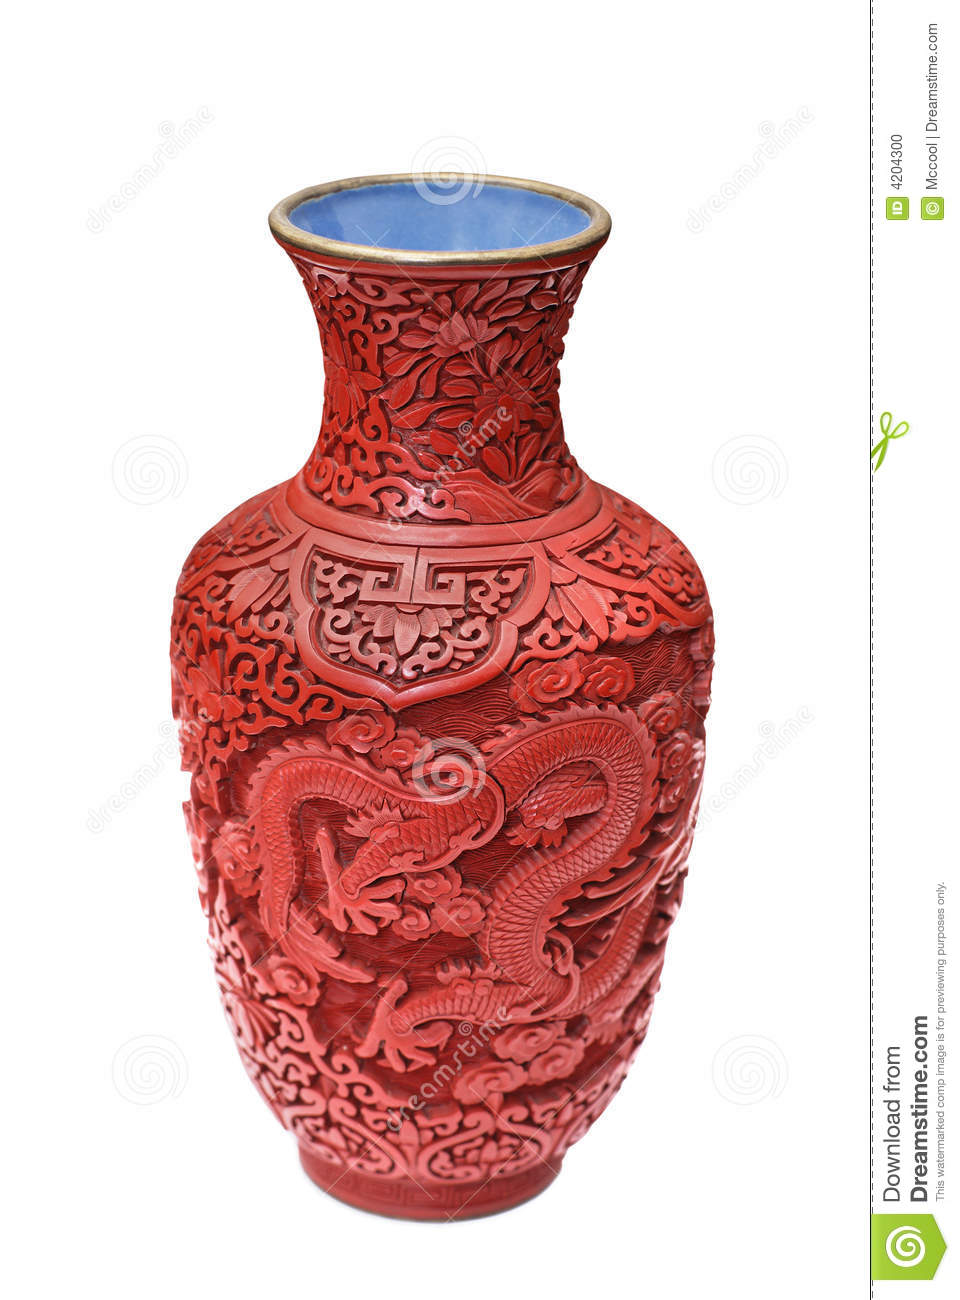 Old chinese vase image collections vases design picture old chinese vase stock photo image of chinese history 4204300 old chinese vase reviewsmspy reviewsmspy